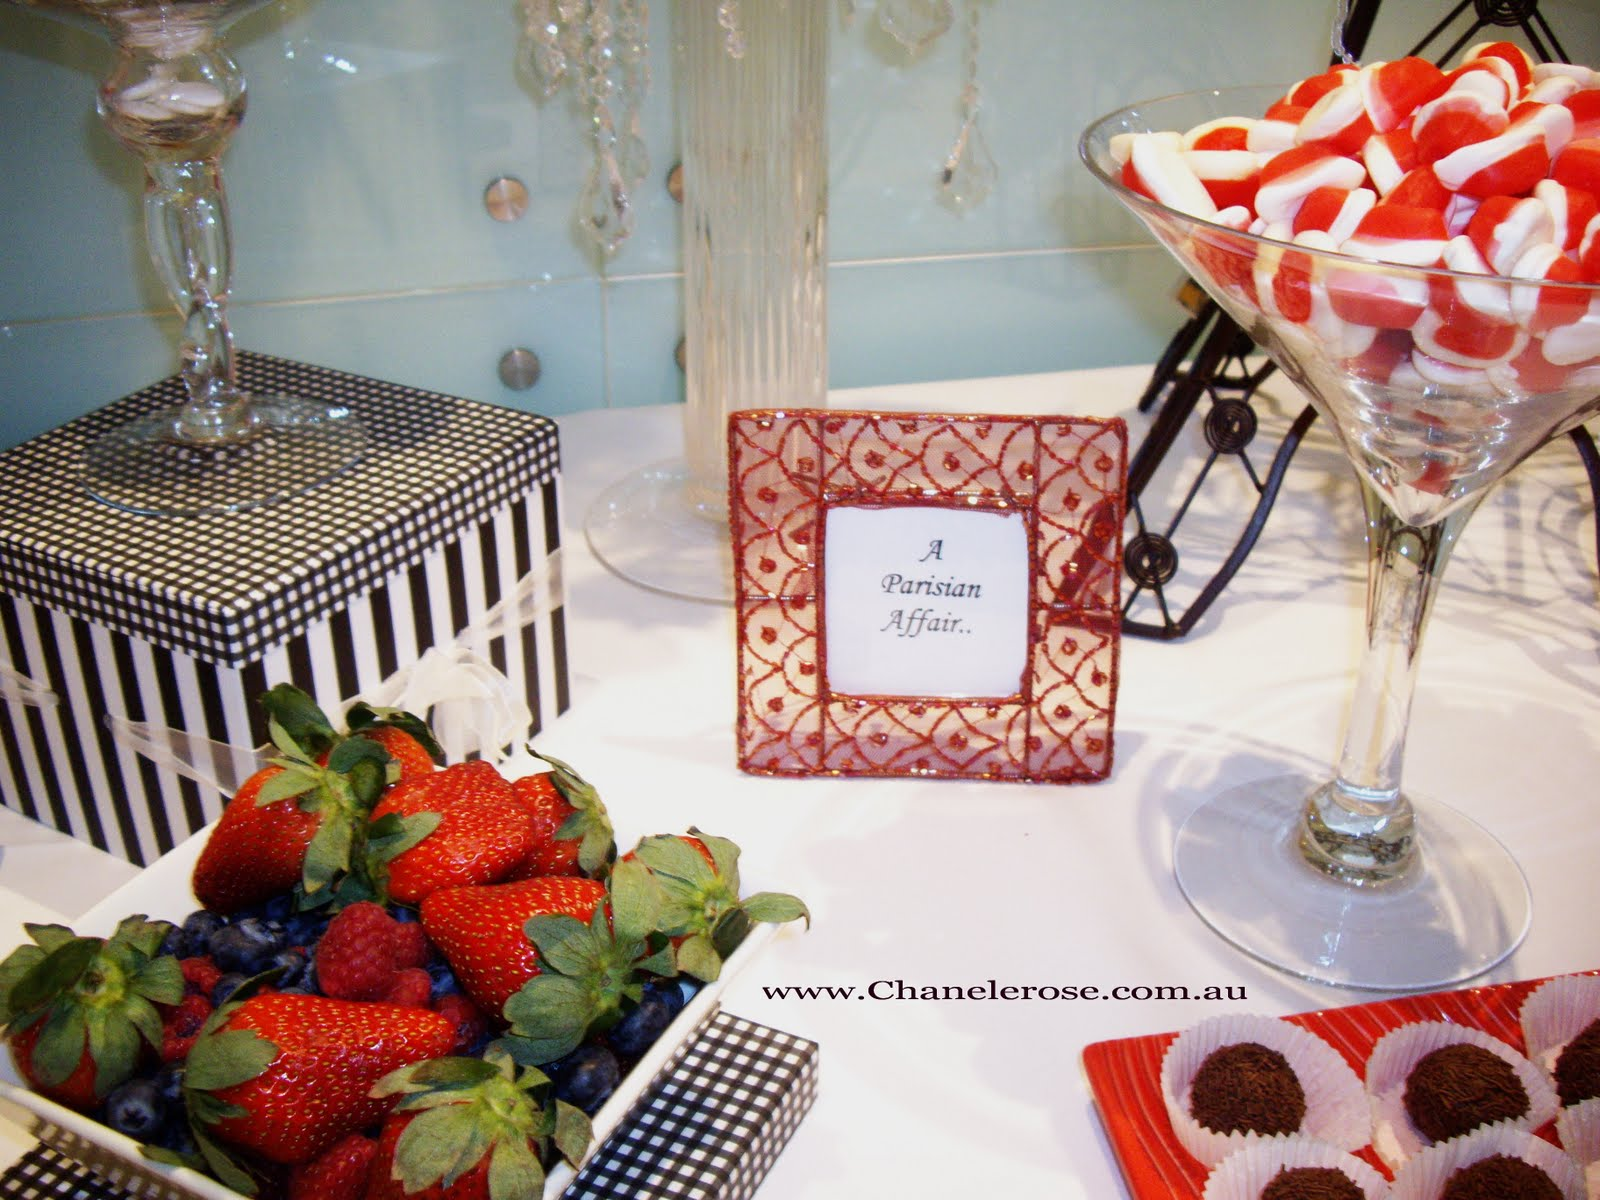 tin wedding anniversary gift ideas